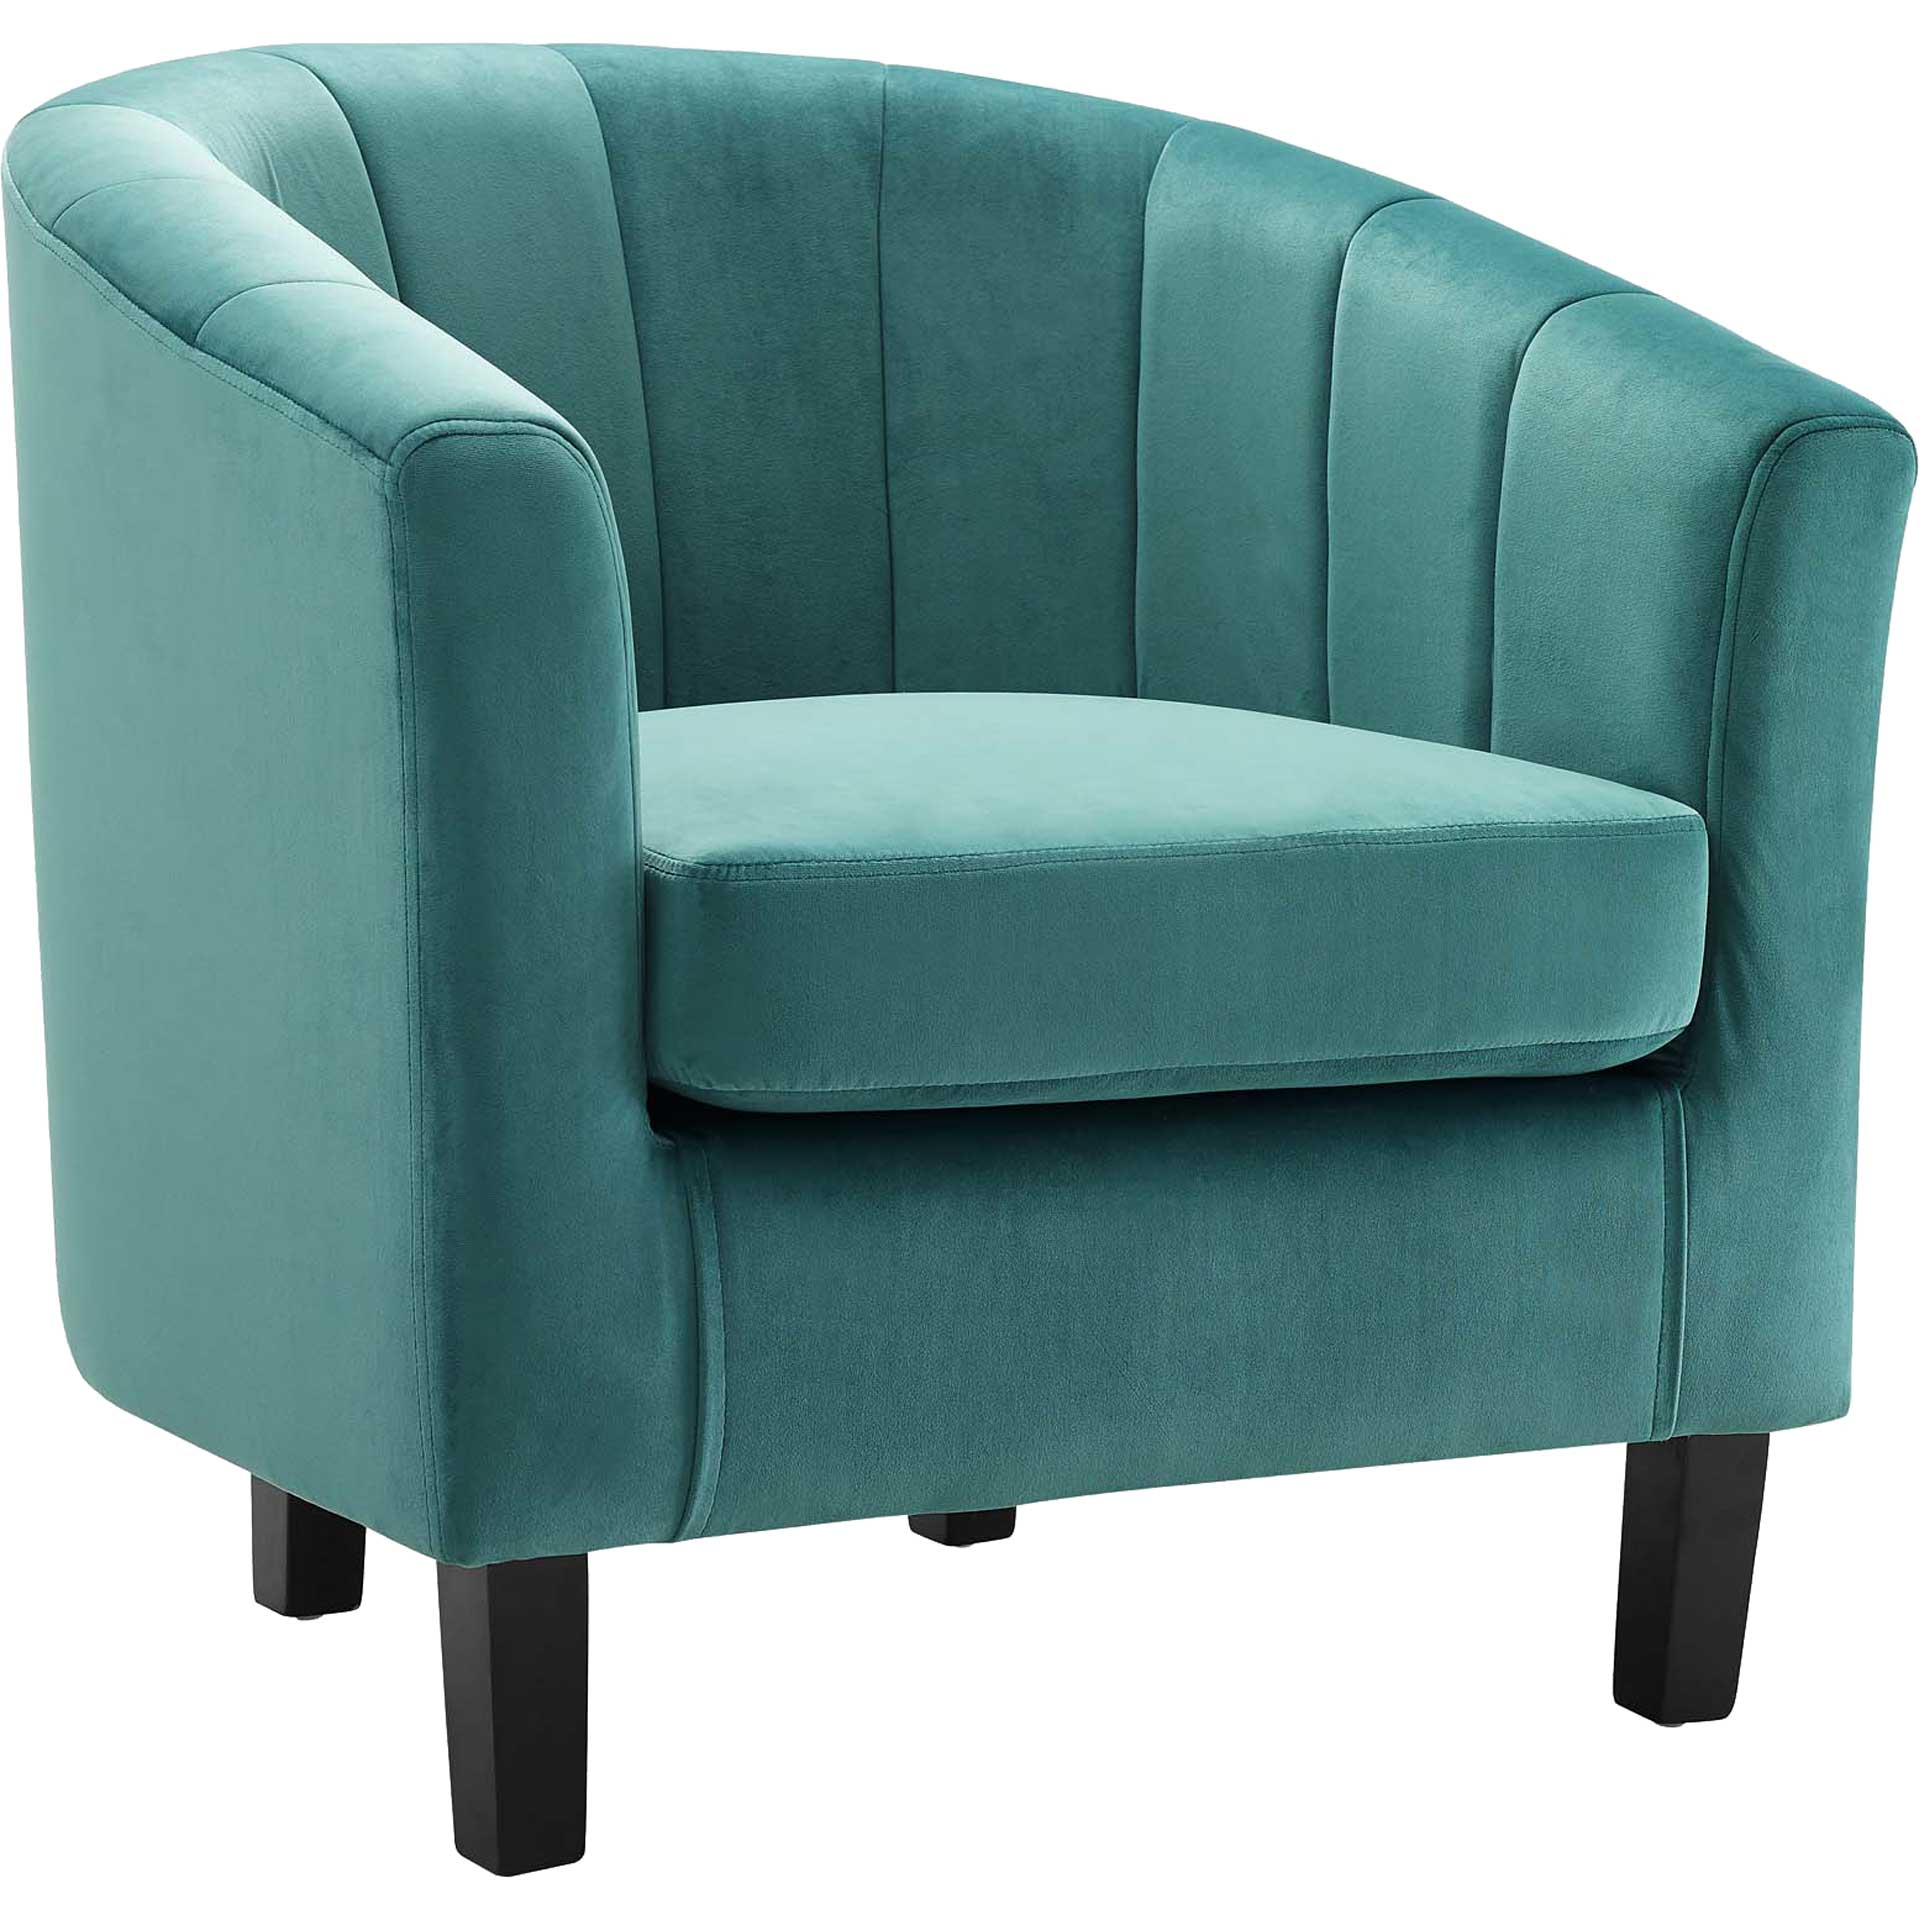 Paloma Channel Tufted Velvet Armchair Teal